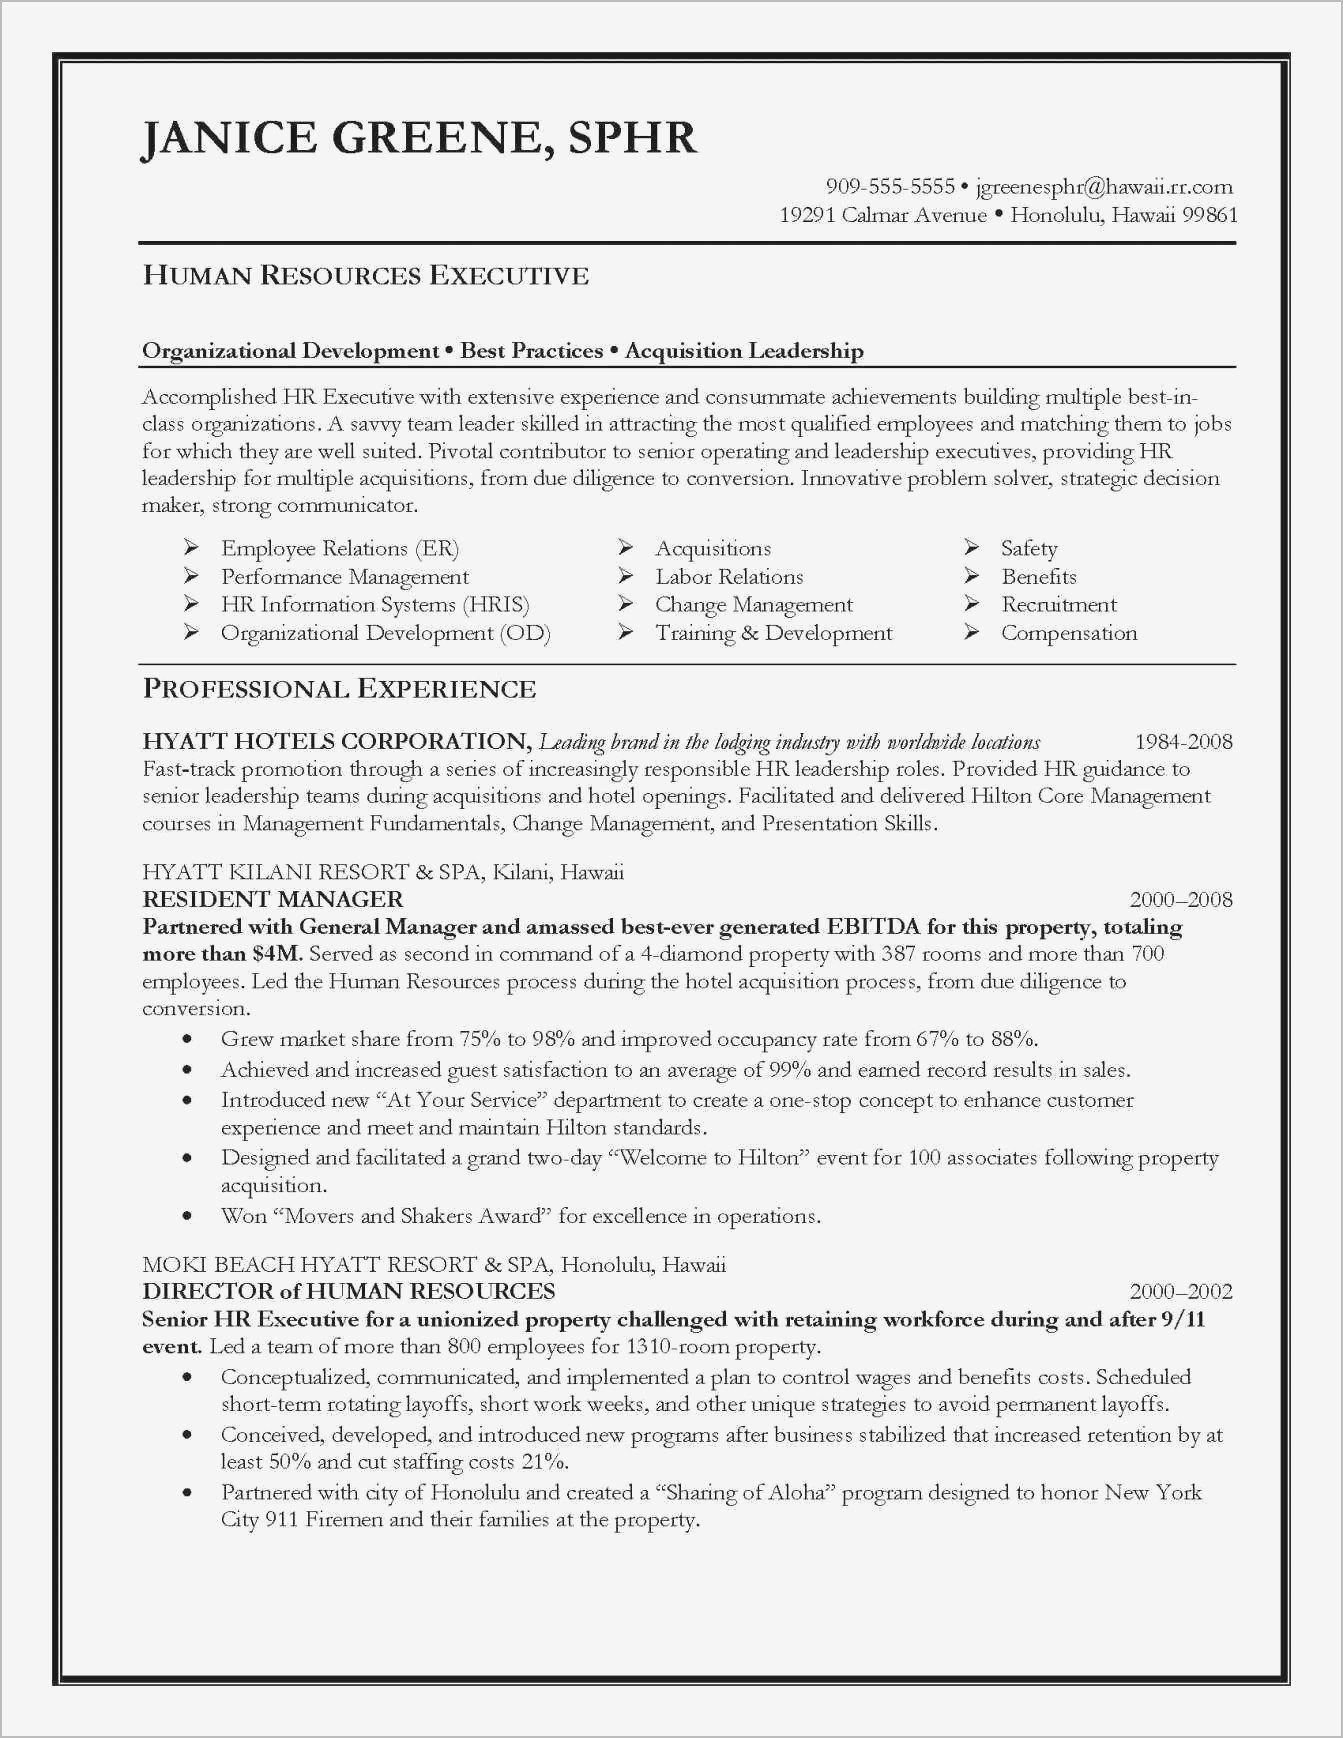 Military Experience On Resume - Hris Specialist Inspirationa Military Experience Resume New Fresh